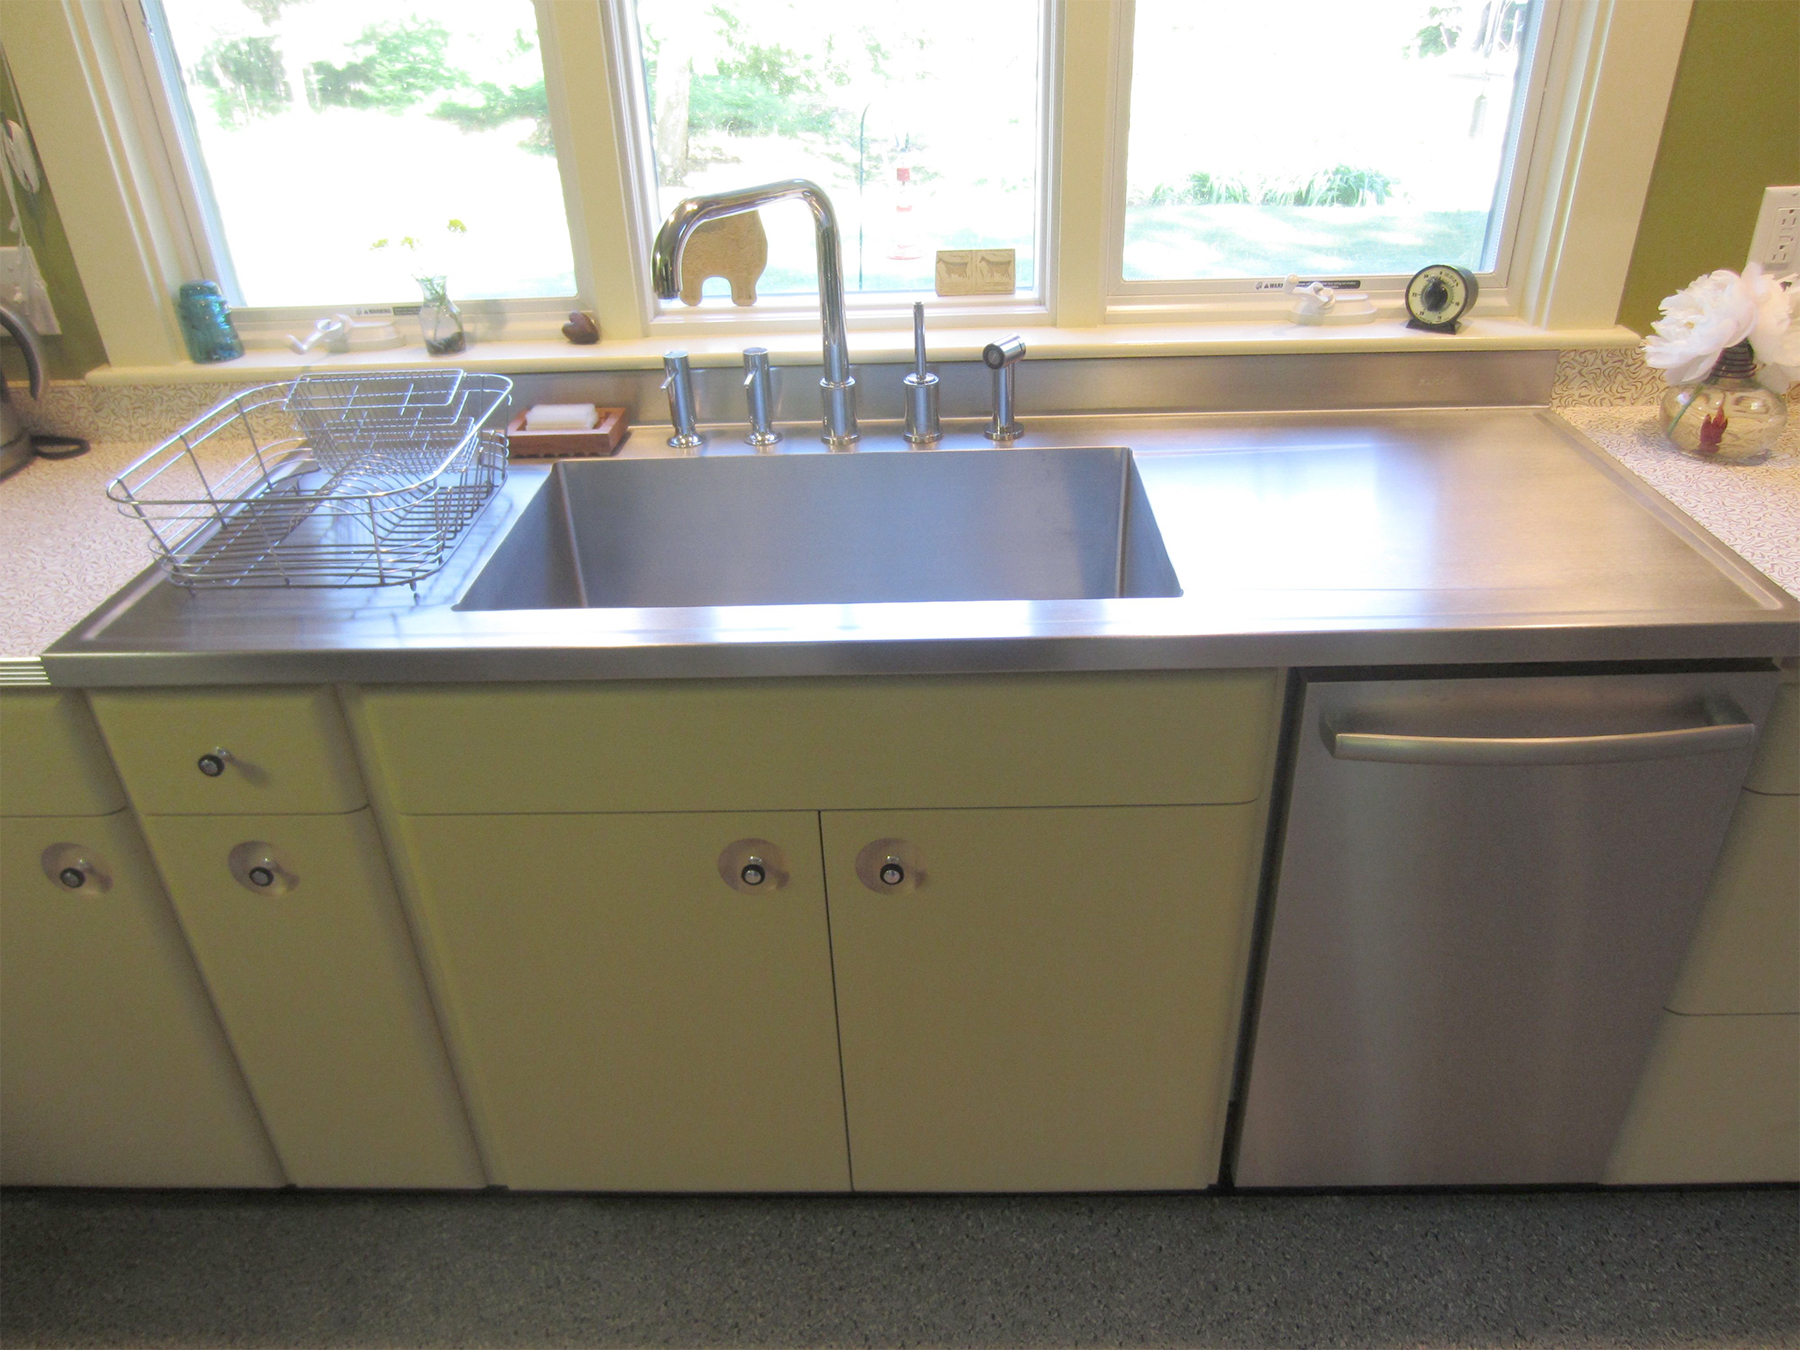 Oakledge kitchen-01: maple cabinetry with both a natural finish & a poly/oil/wax finish over milk paint. Custom Elkay stainless sink & drainboards.